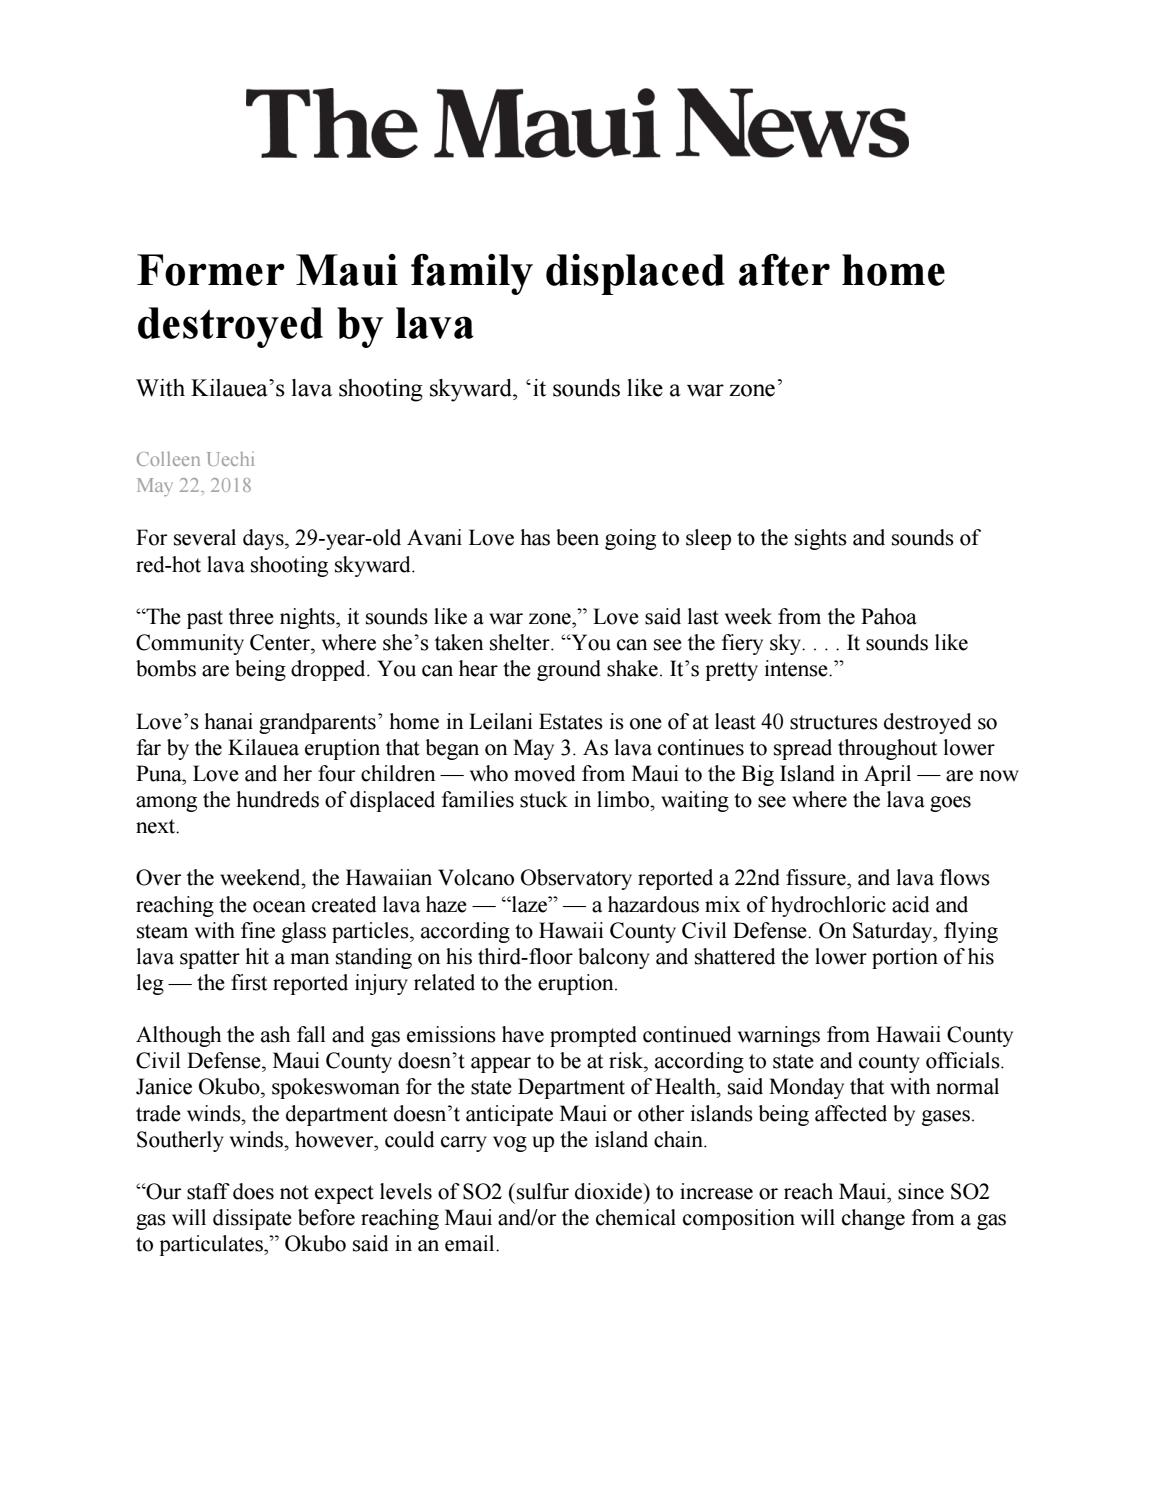 Former Maui family displaced after home destroyed by lava by